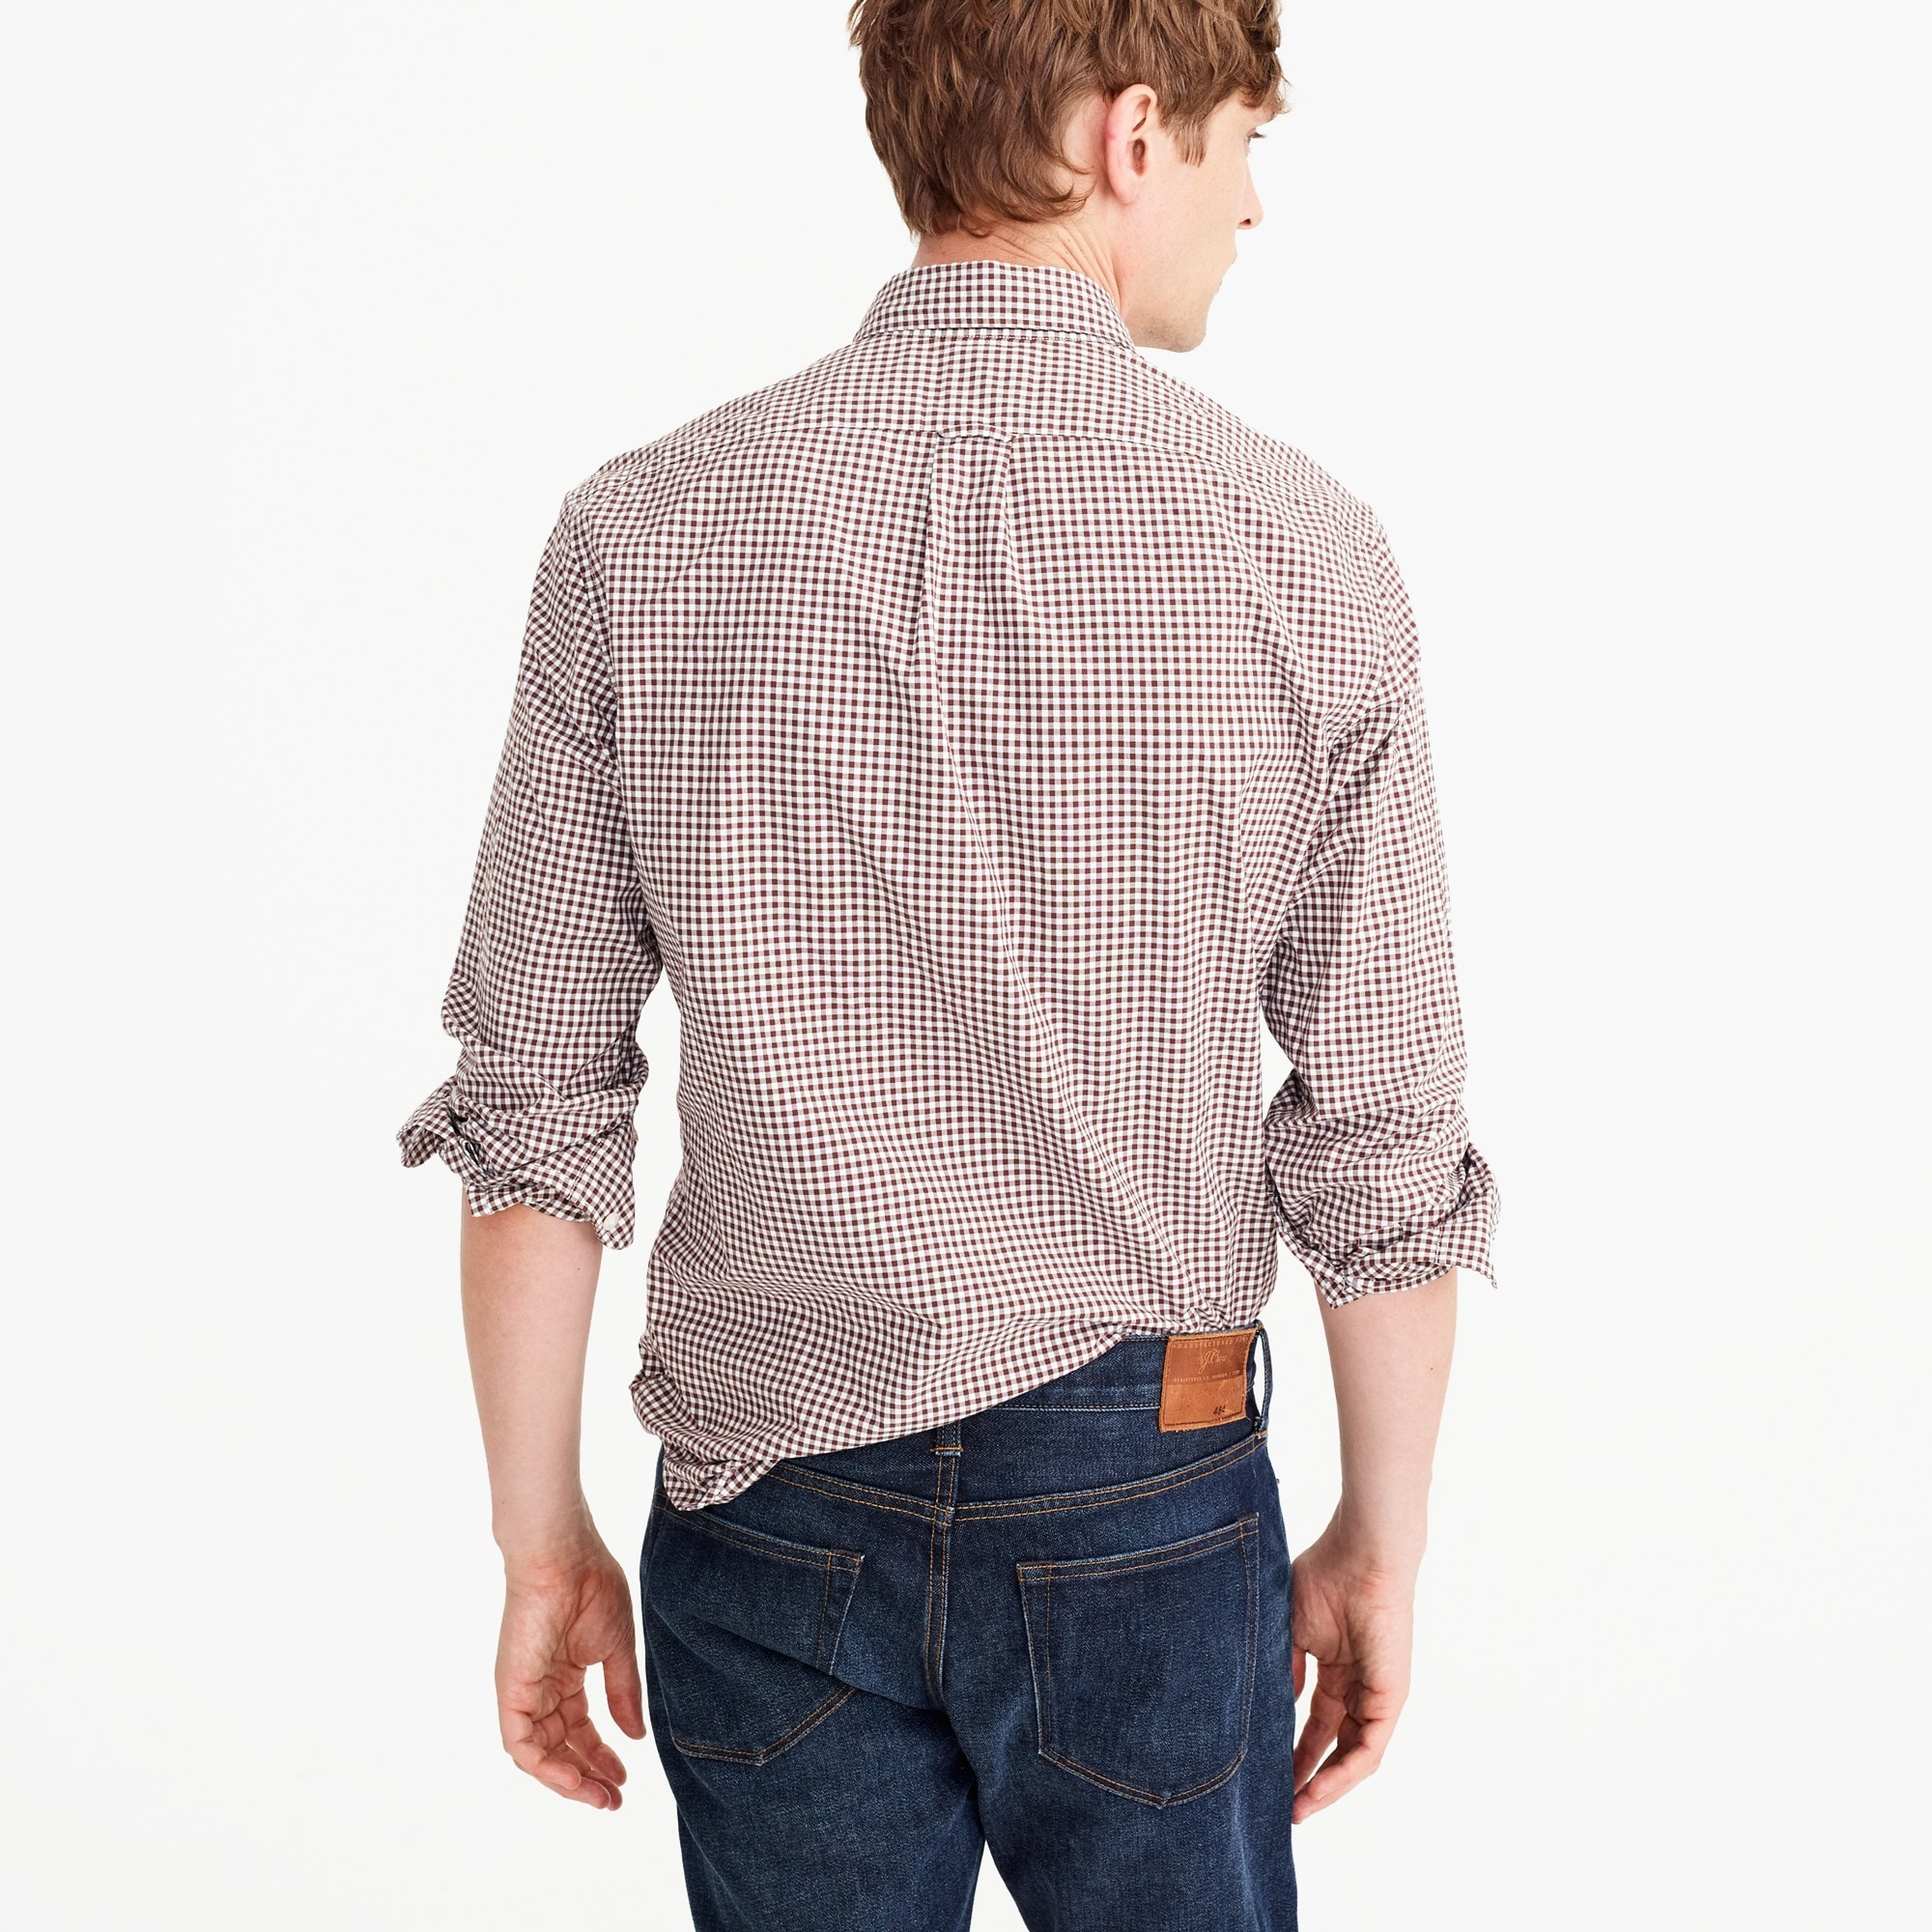 Image 4 for Secret Wash shirt in classic gingham